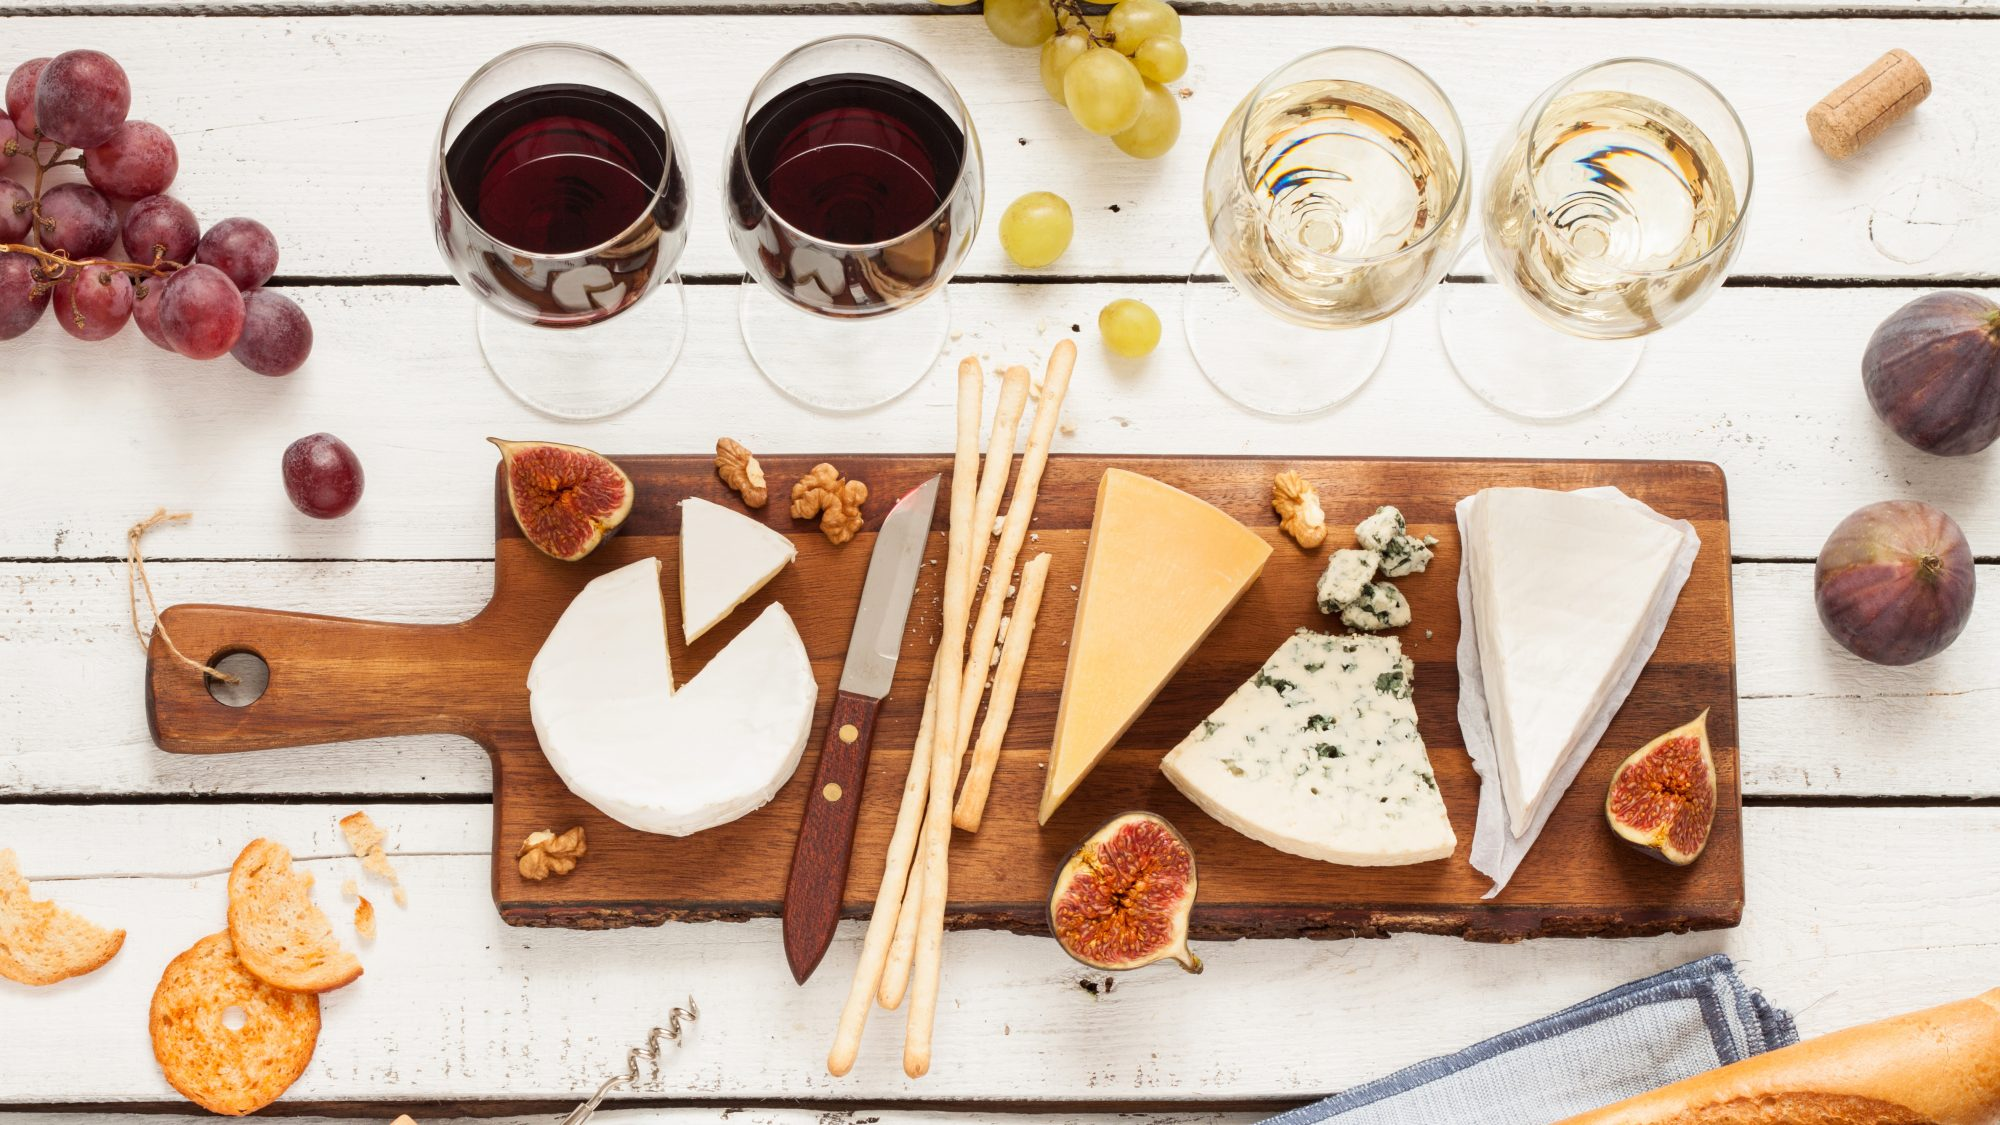 Wine and cheese pairings - wine and cheese picture